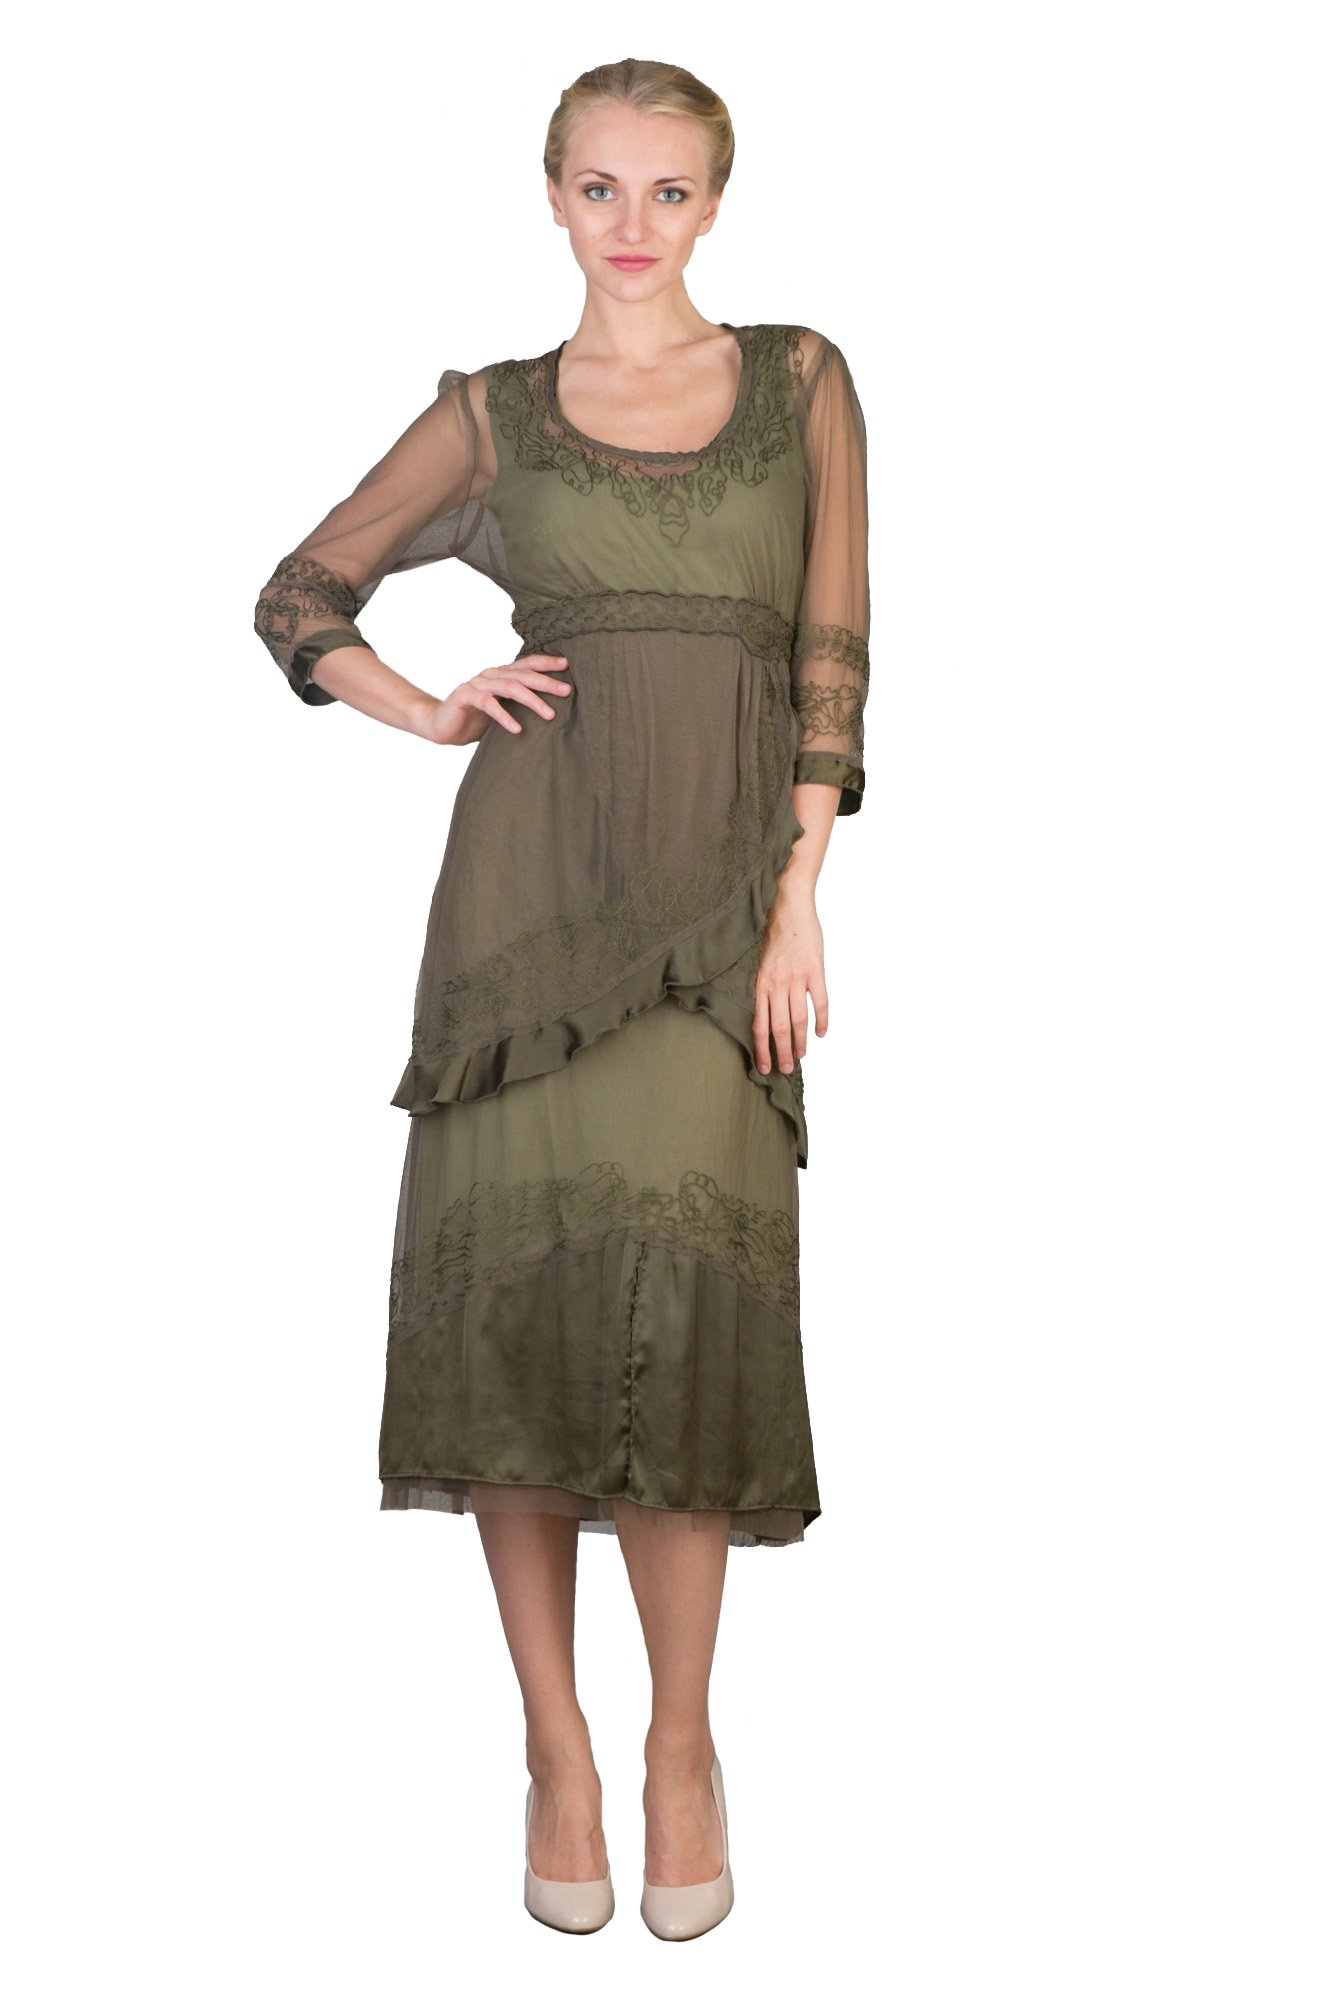 Nataya 40221 Romantic Vintage Style Dress in Aloe (XL) by Nataya